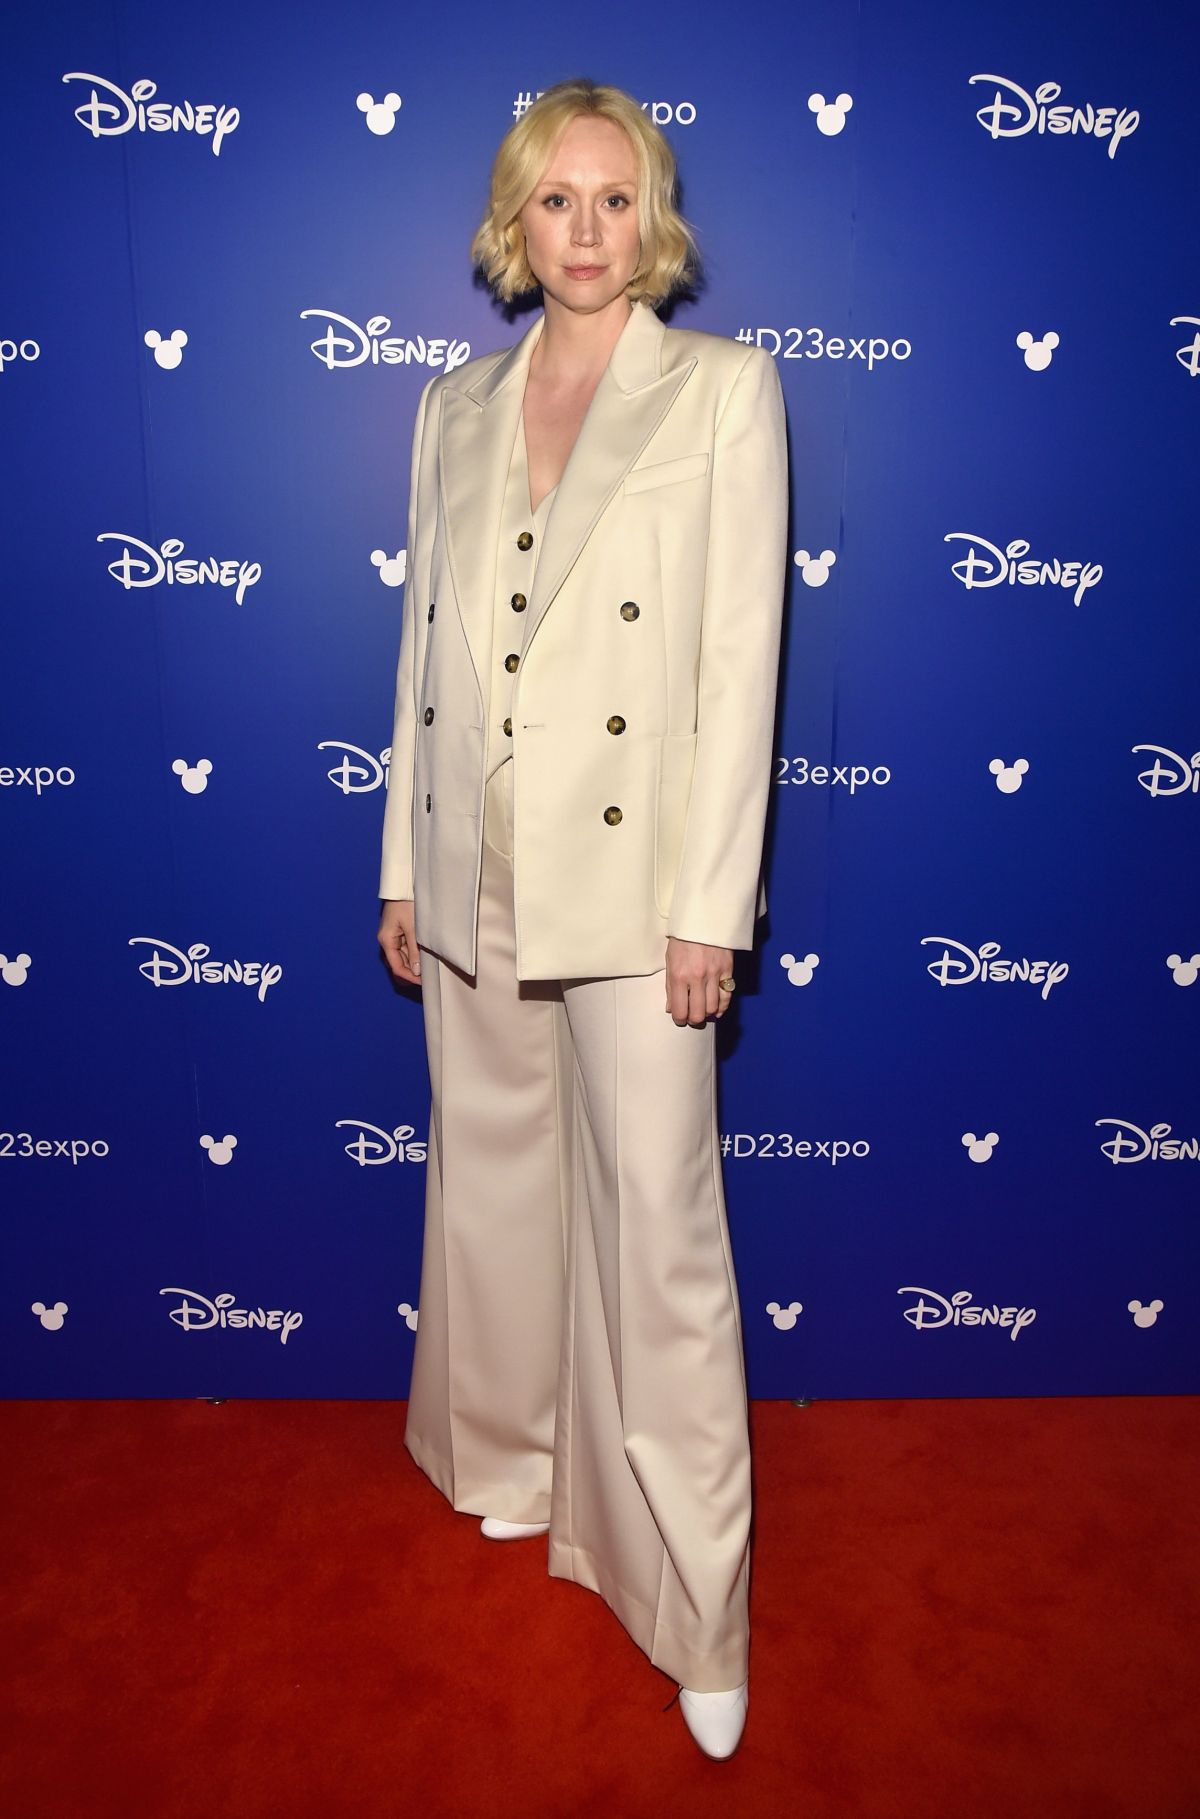 GWENDOLINE CHRISTIE at Disney's D23 Expo 2017 in Anaheim 07/15/2017   gwendoline-christie-at-disney-s-d23-expo-2017-in-anaheim-07-15-2017_2